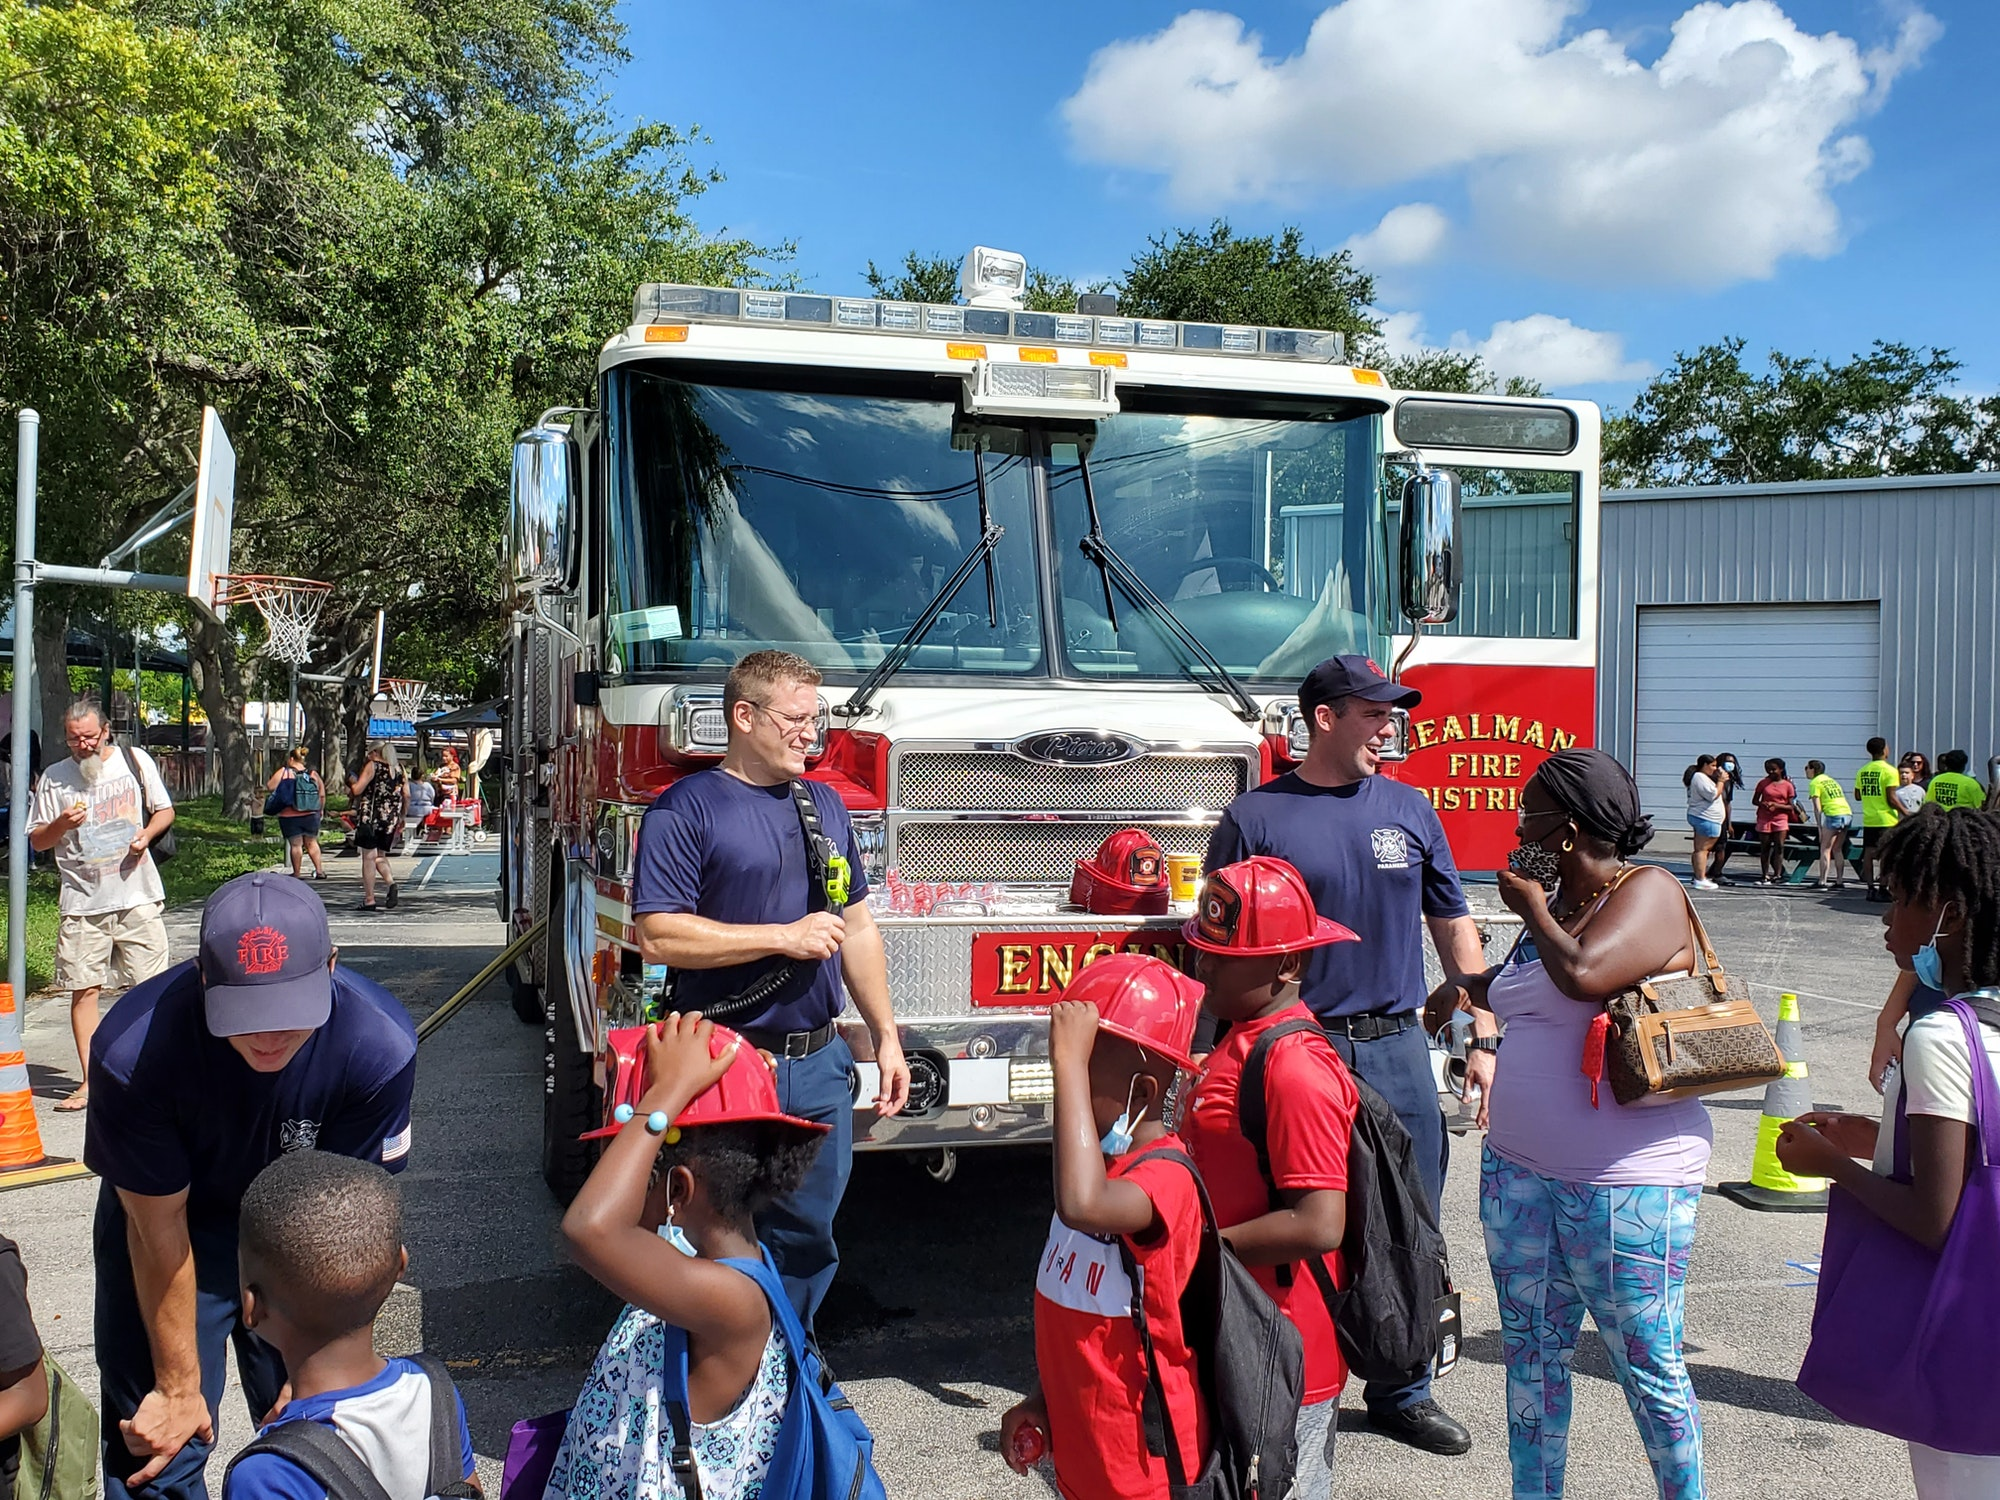 Firefighters talking with kids in front of a fire truck 08/07/2021